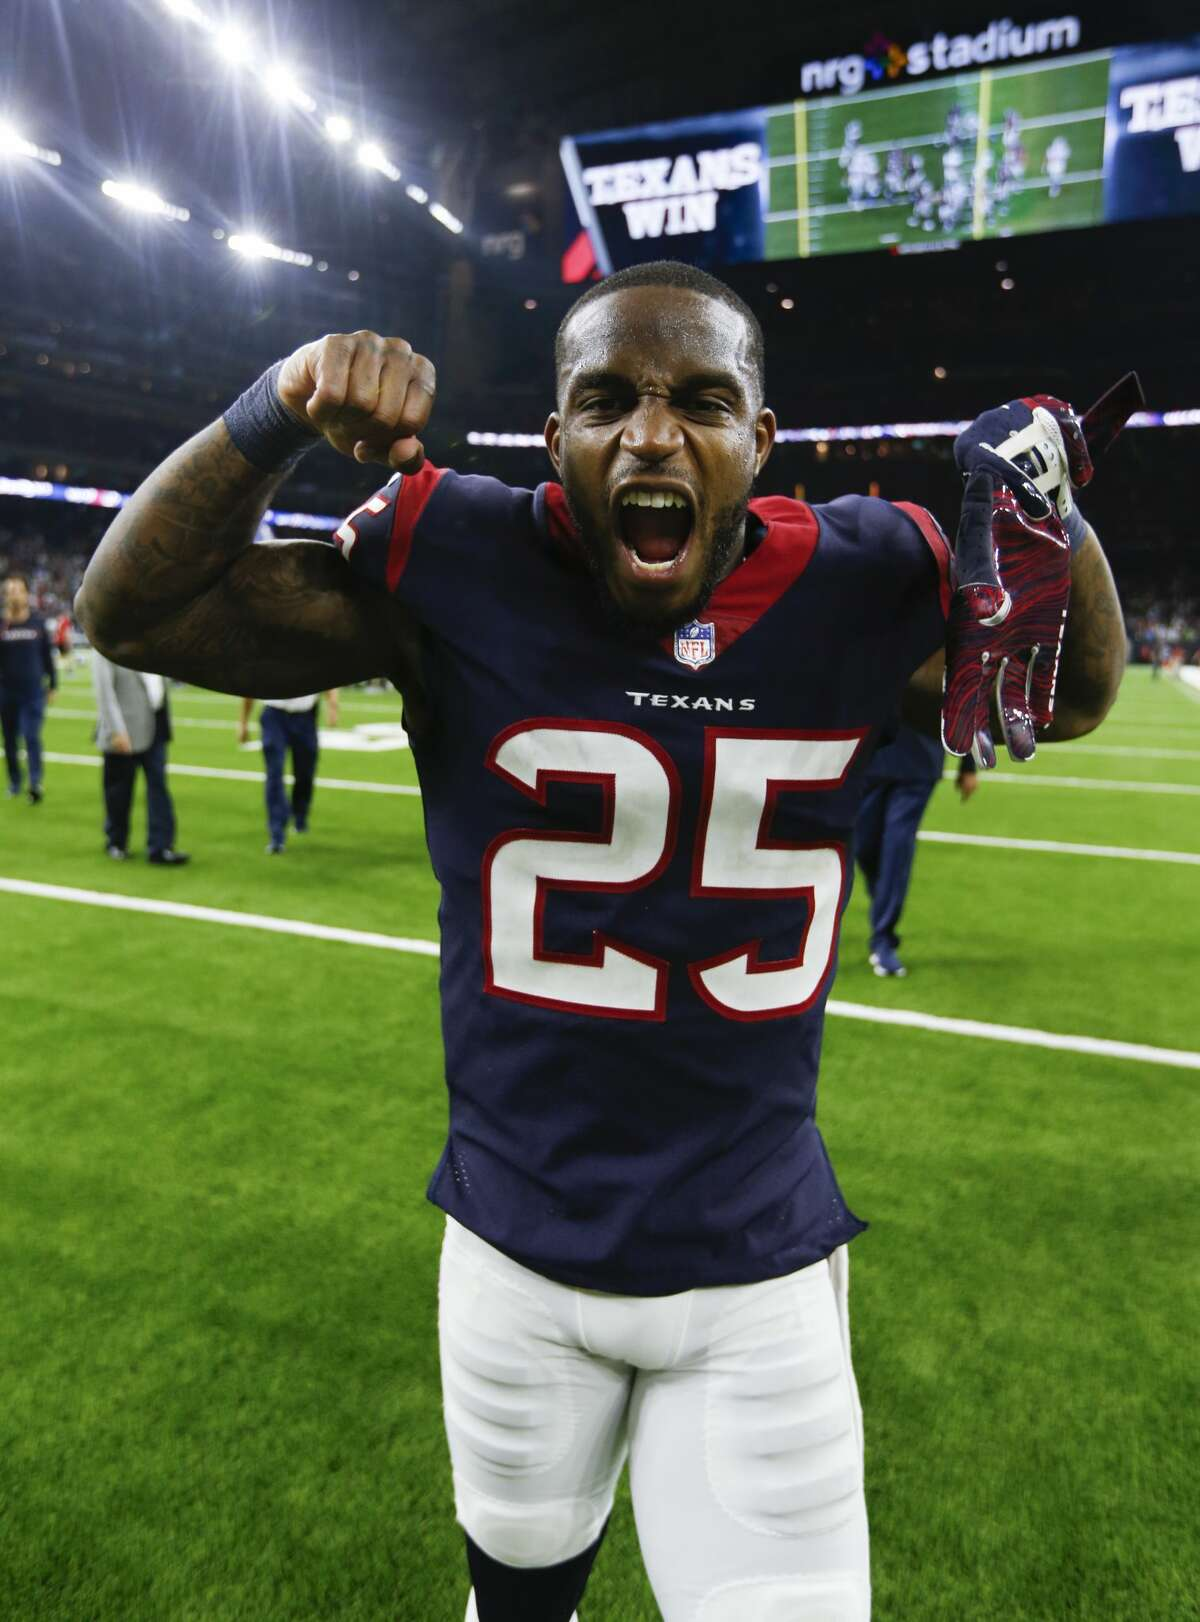 Houston Texans strong safety Kareem Jackson (25) celebrates as he runs off the field after the Texans beat the Dallas Cowboys 19-16 in overtime of an NFL football game at NRG Stadium on Sunday, Oct. 7, 2018, in Houston.